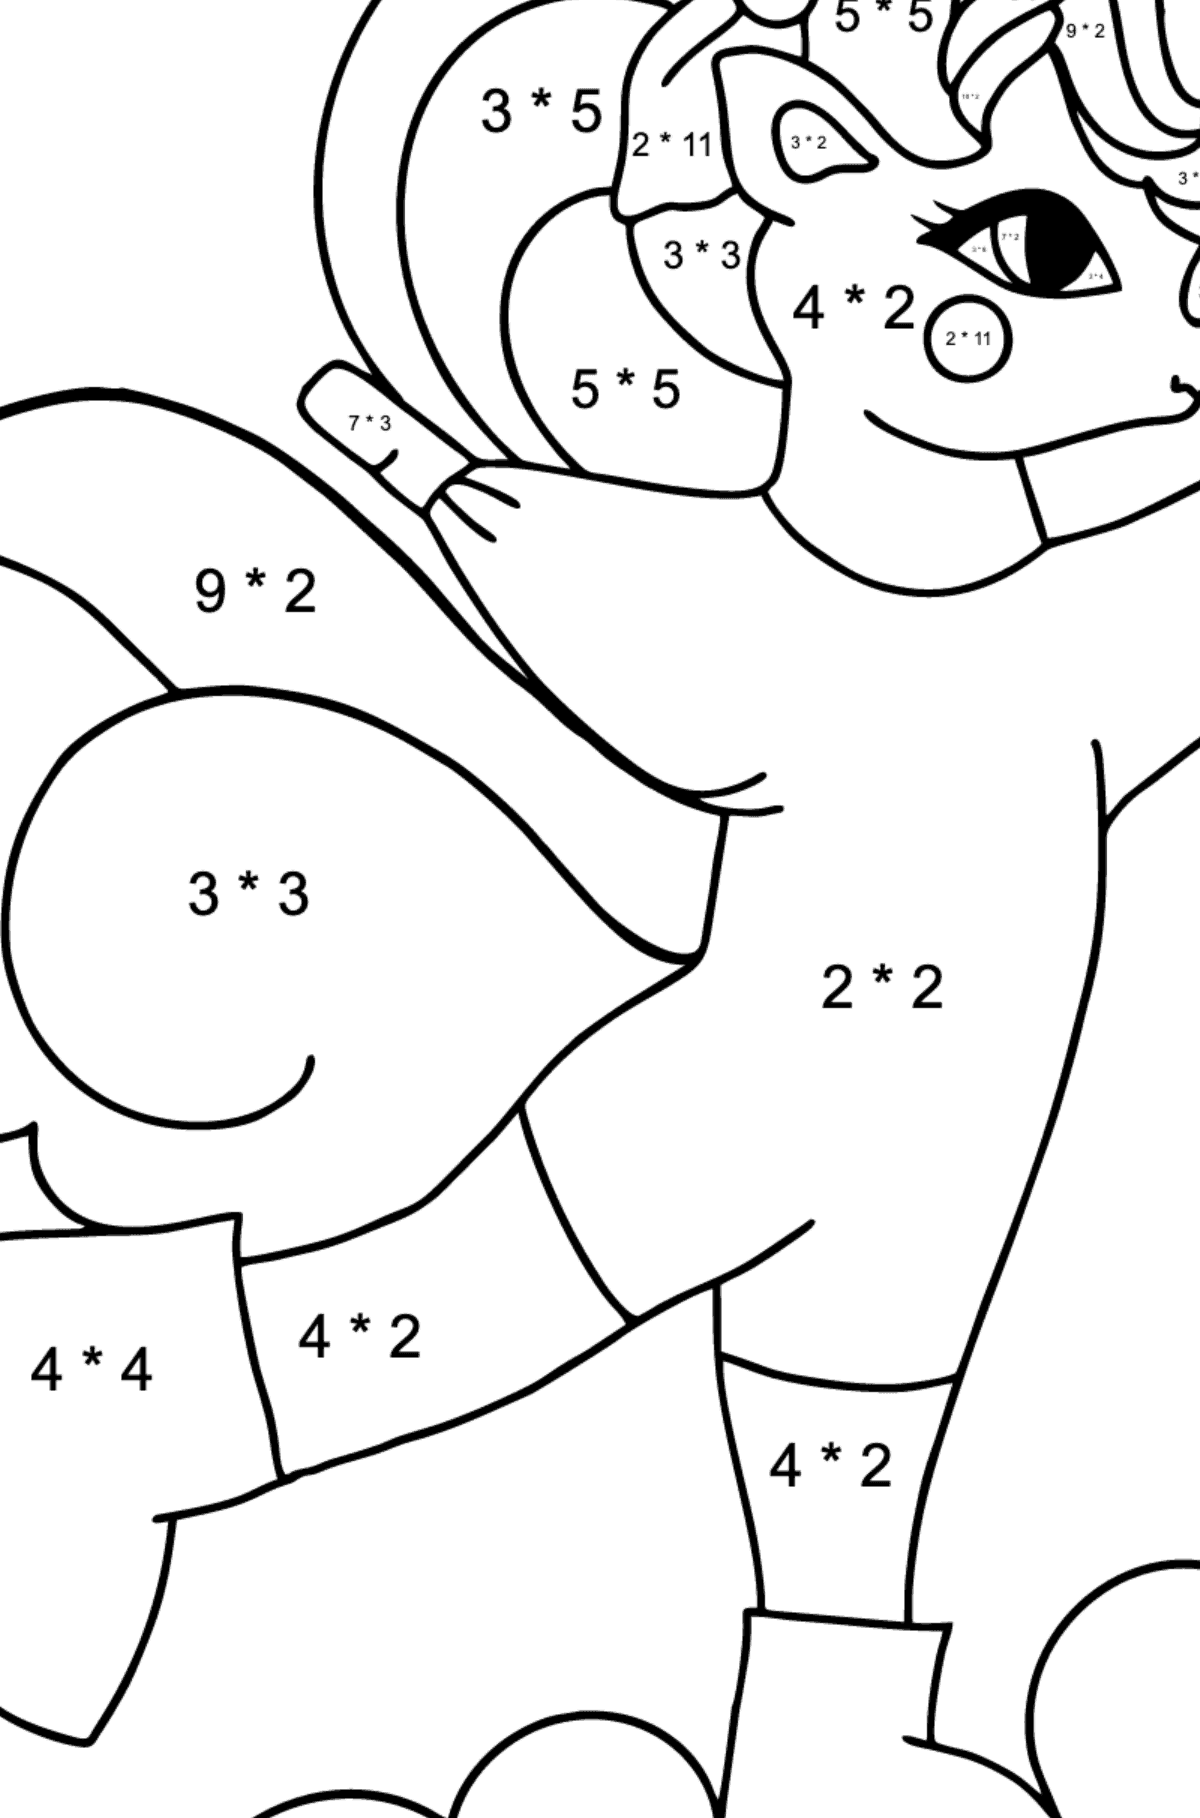 Complex Coloring Page - A Unicorn on Skates - Math Coloring - Multiplication for Children